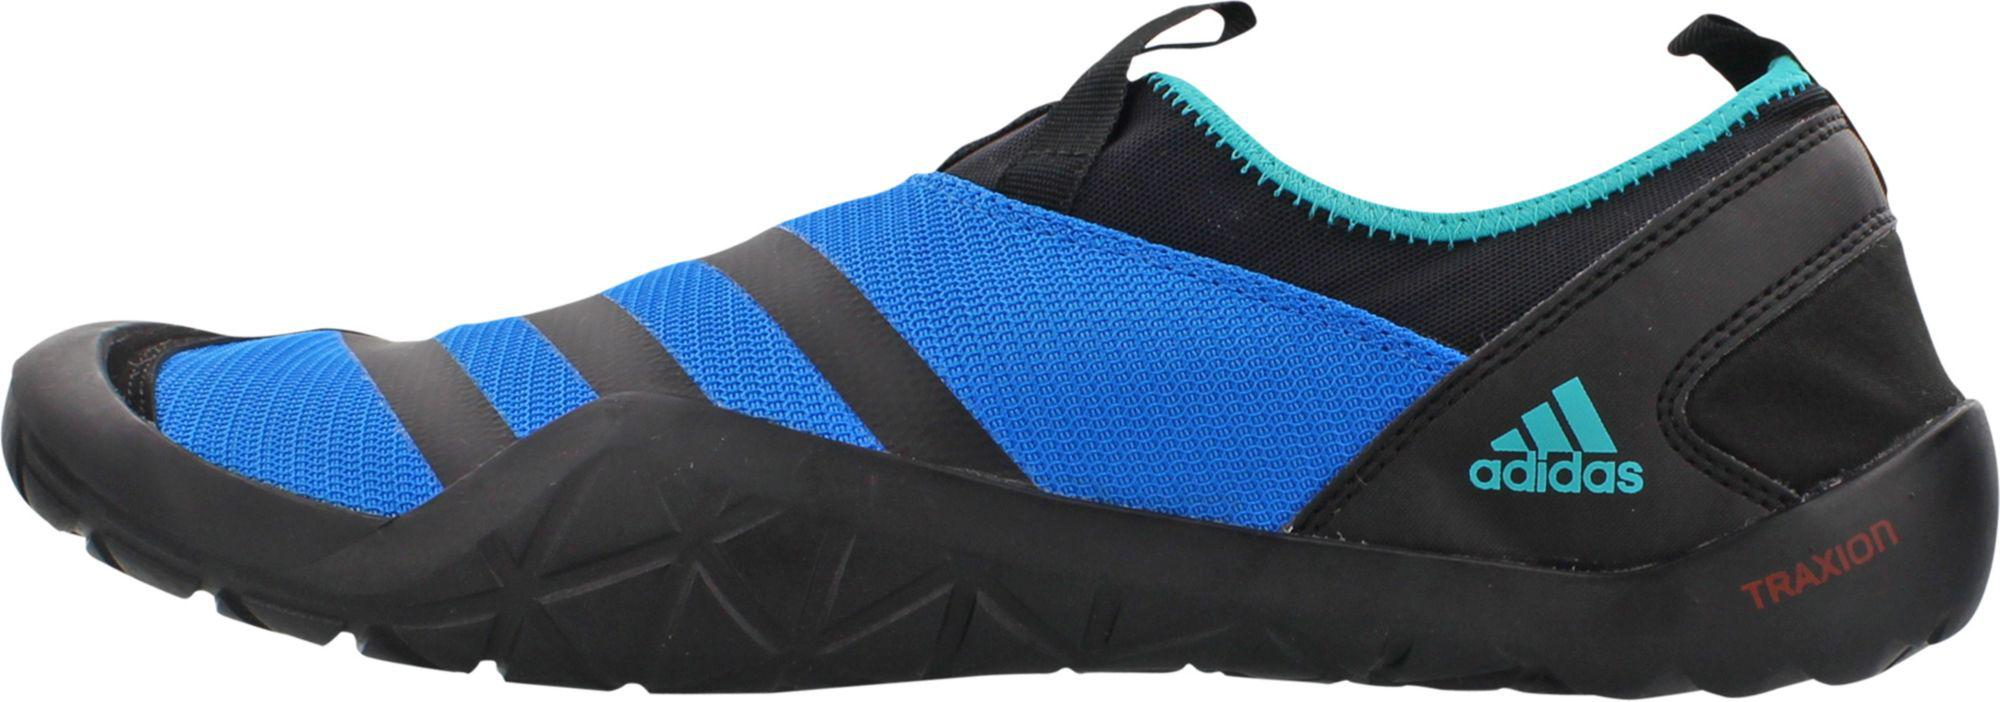 448b9e5dcce0 Lyst - adidas Outdoor Climacool Jawpaw Slip-on Water Shoes in Blue ...